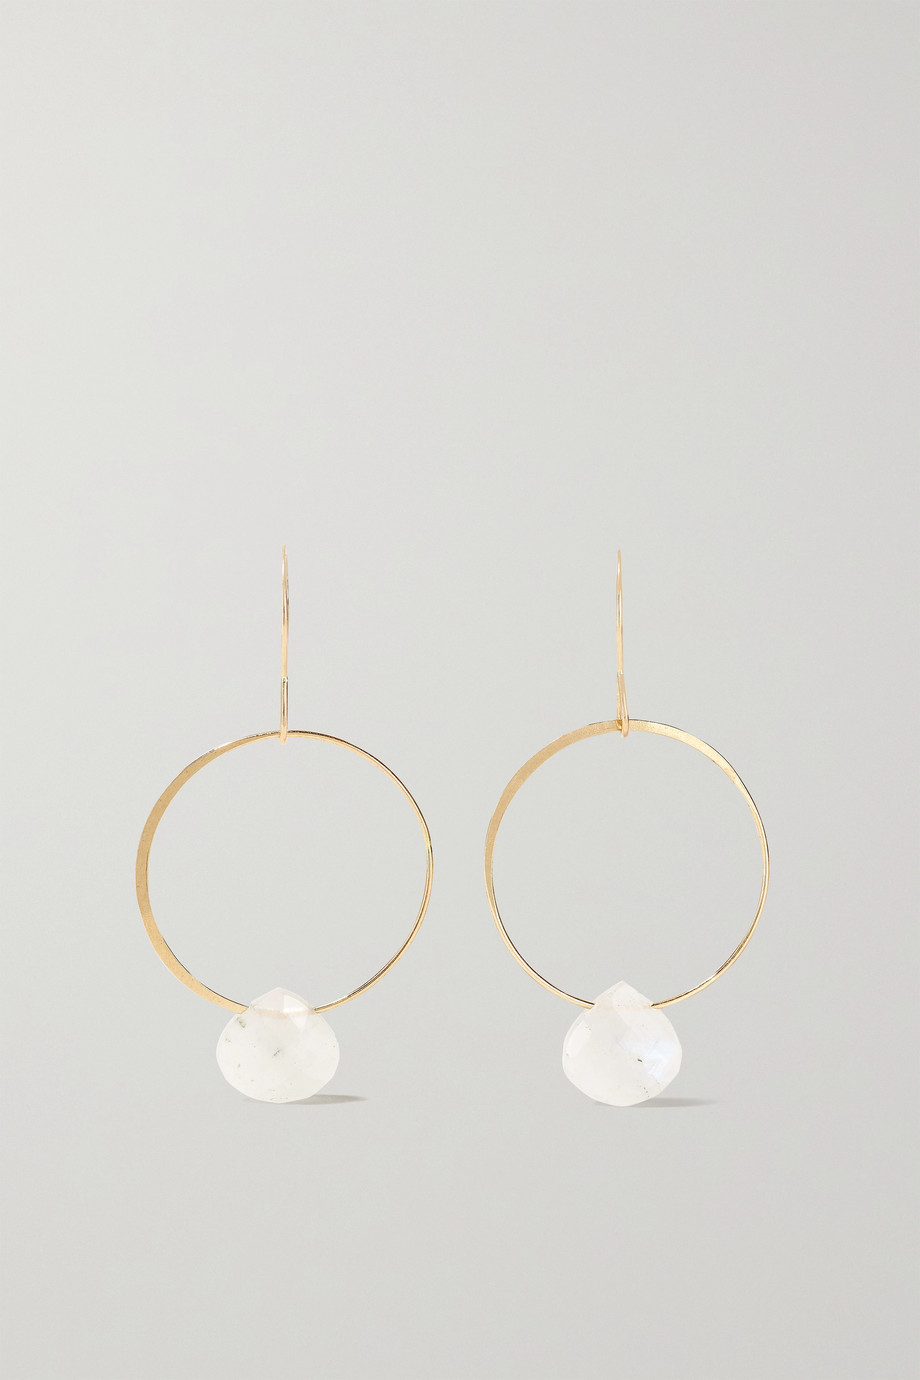 MELISSA JOY MANNING 14-karat recycled gold moonstone earrings